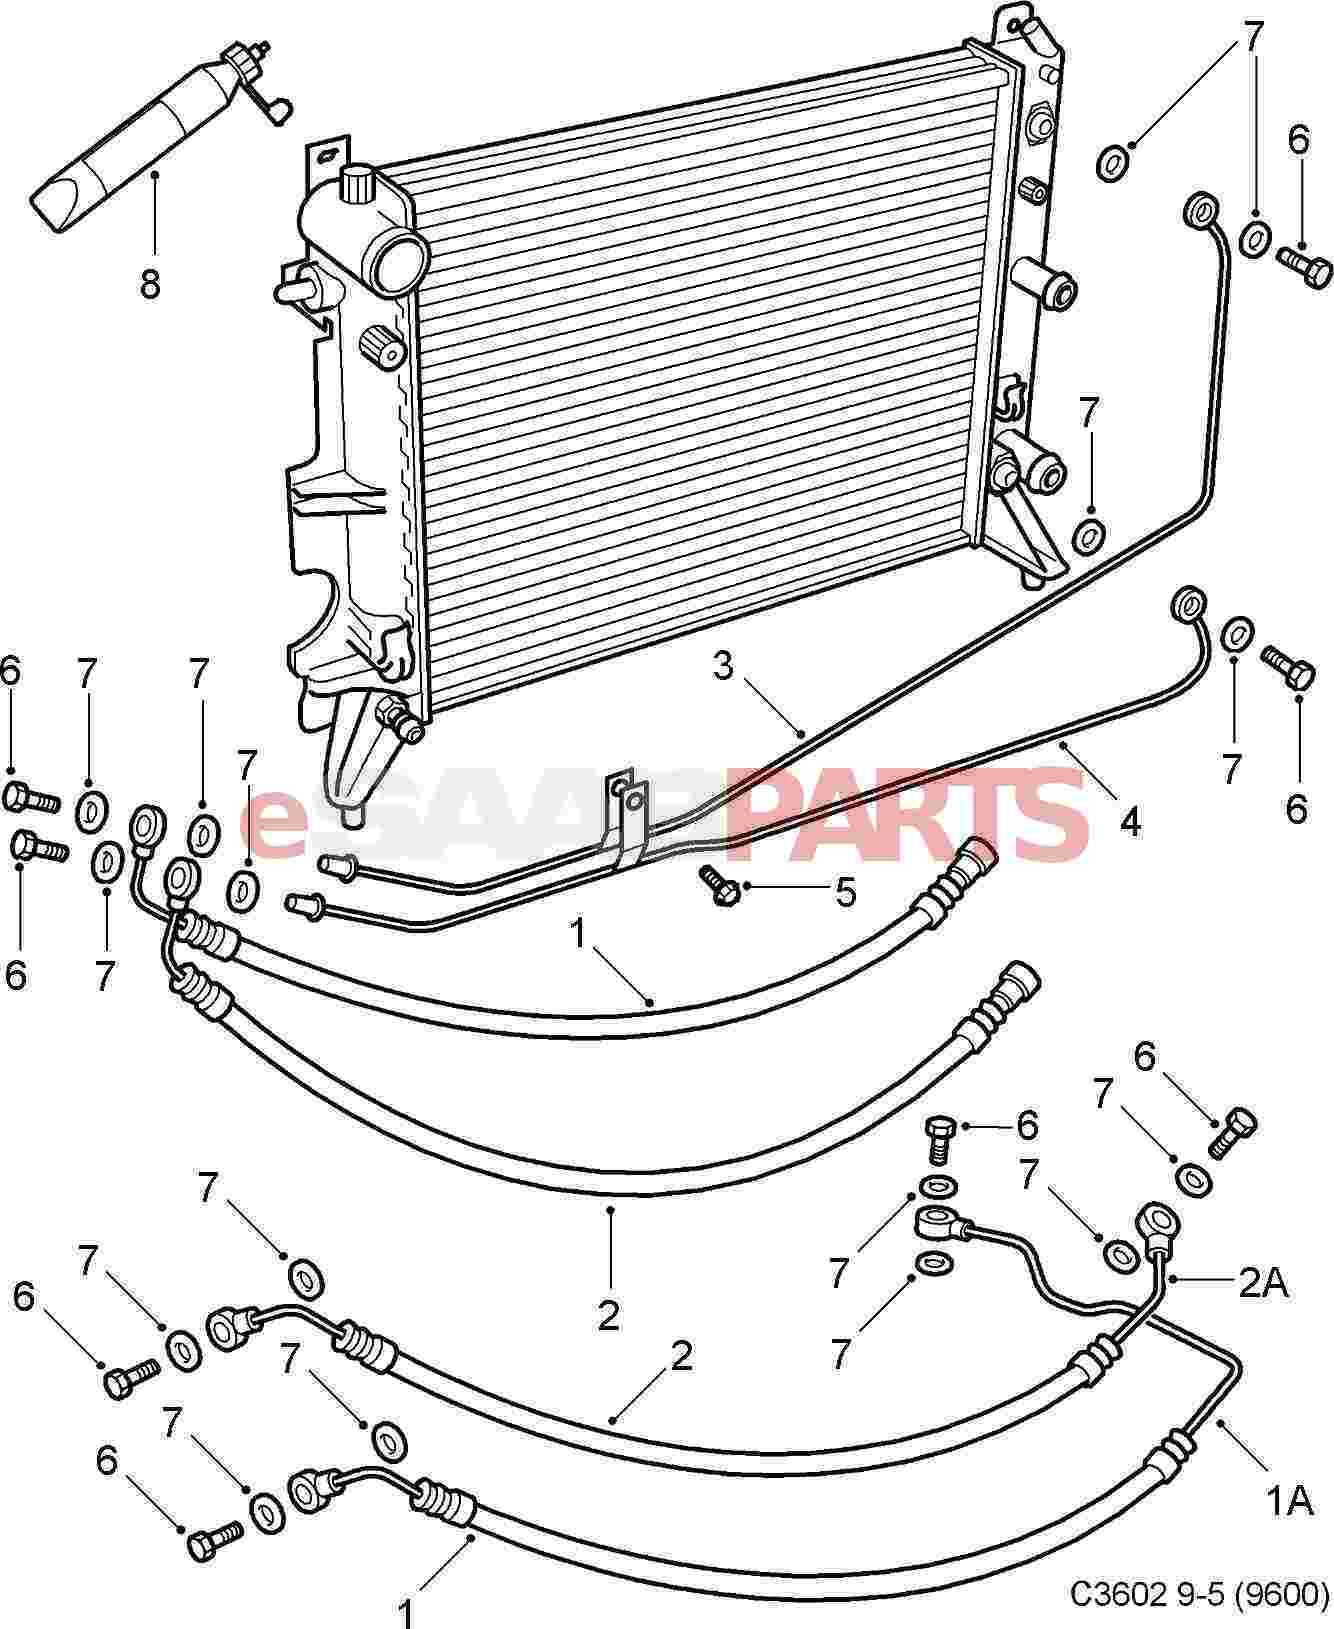 hight resolution of esaabparts com saab 9 5 9600 transmission parts transmission automatic oil cooler at